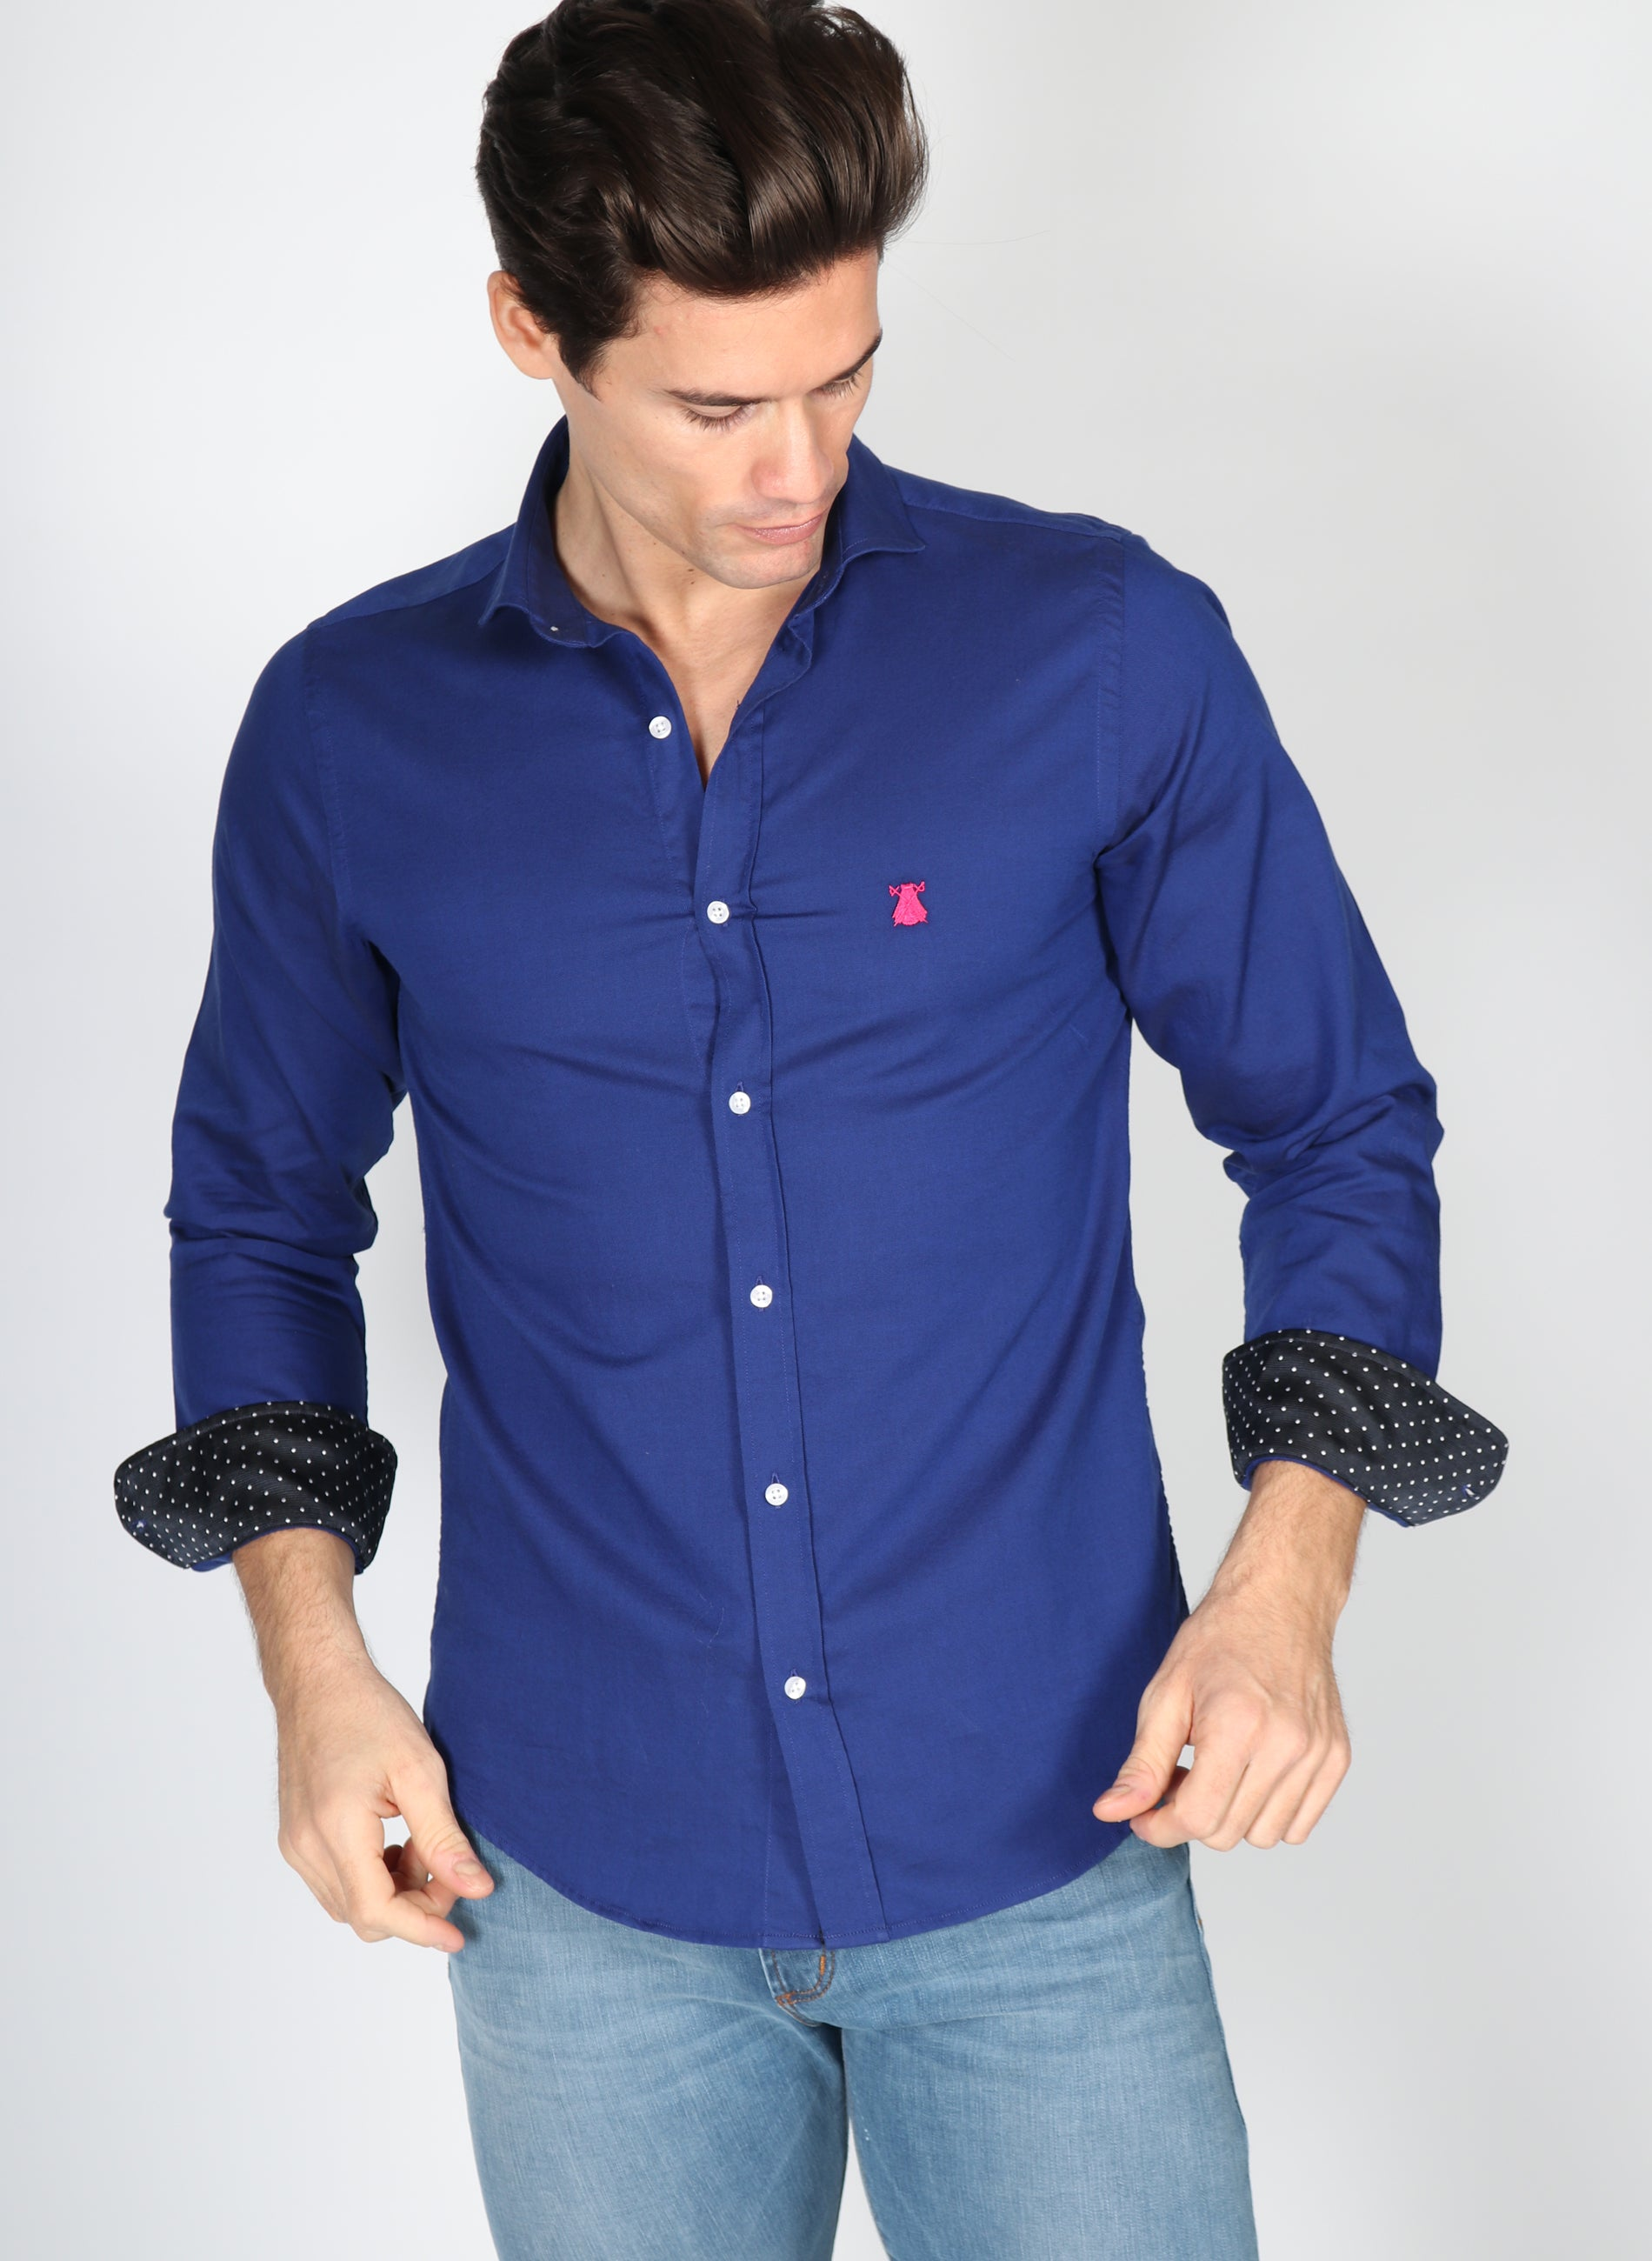 Blue Ink Polka Dot Shirt